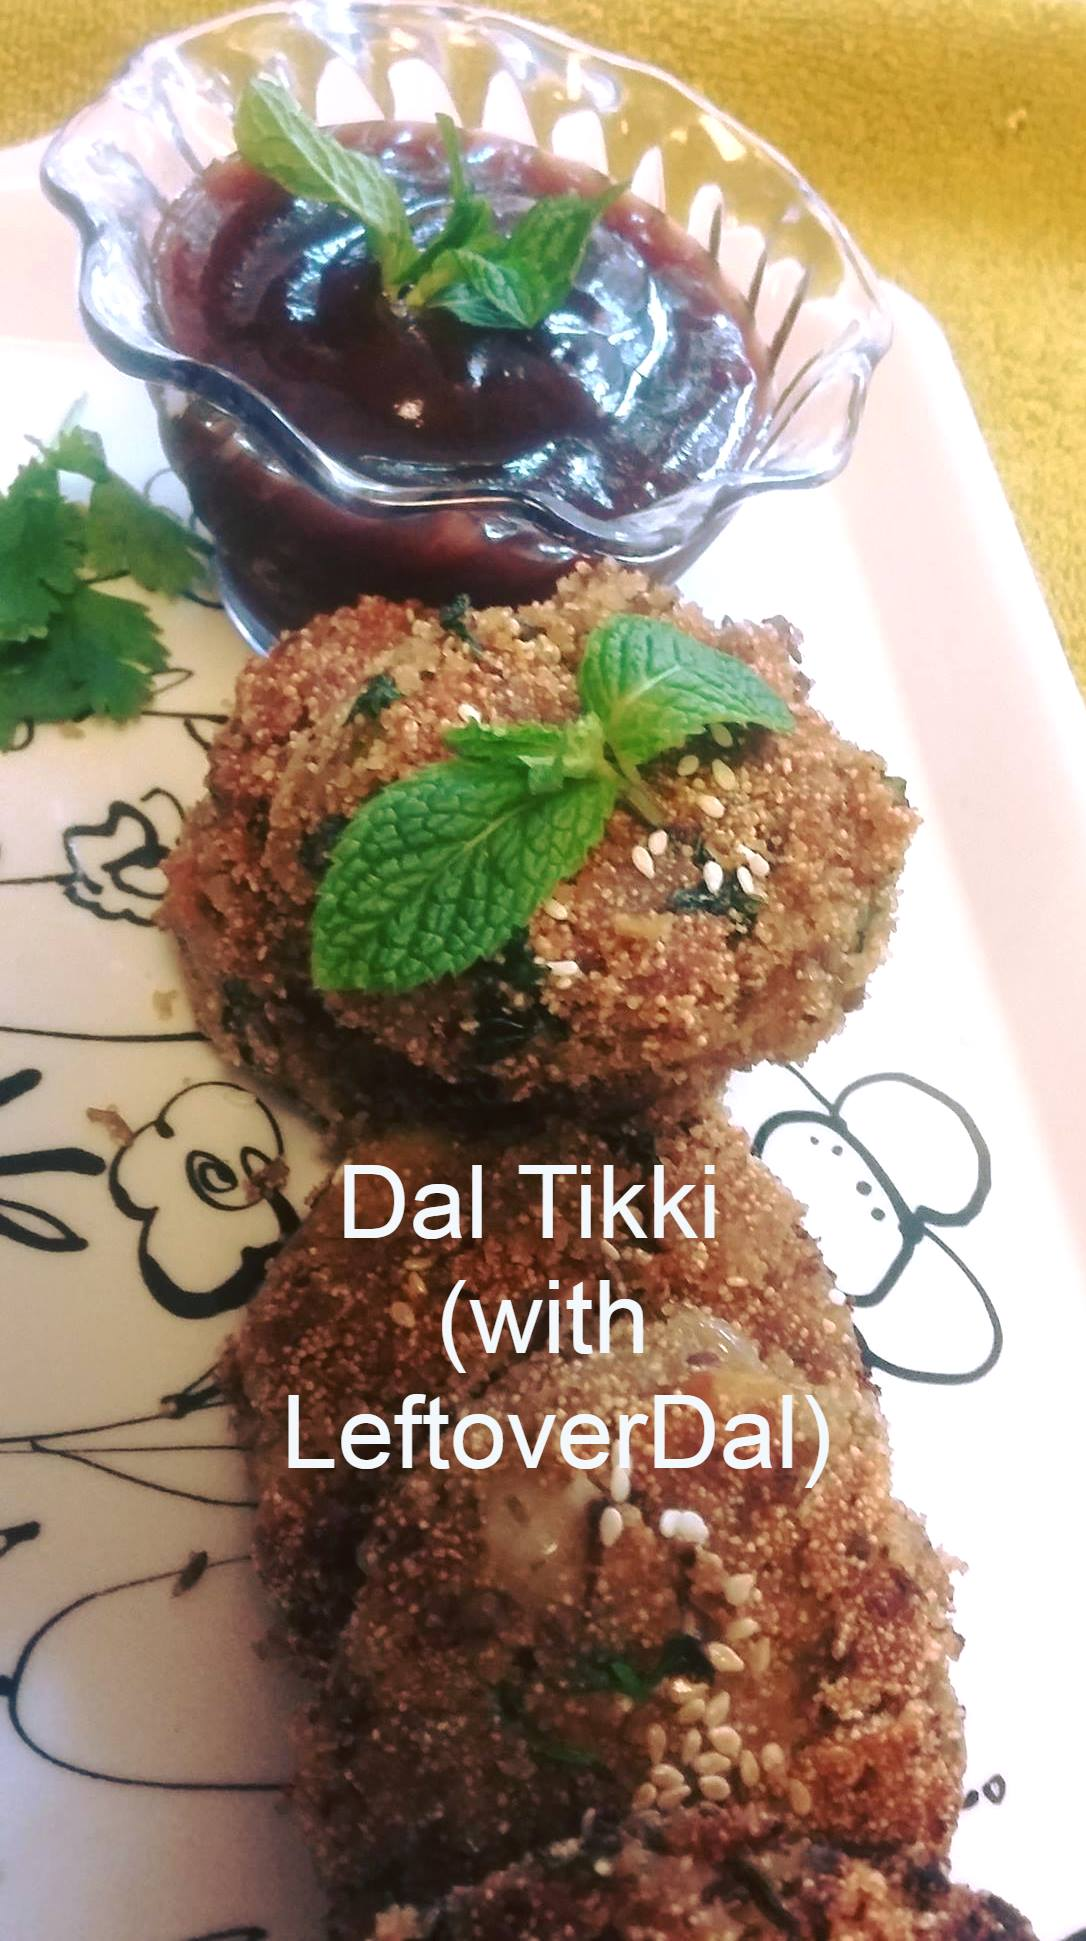 #WFD Dal Tikki with leftover Dal (#Reuse)